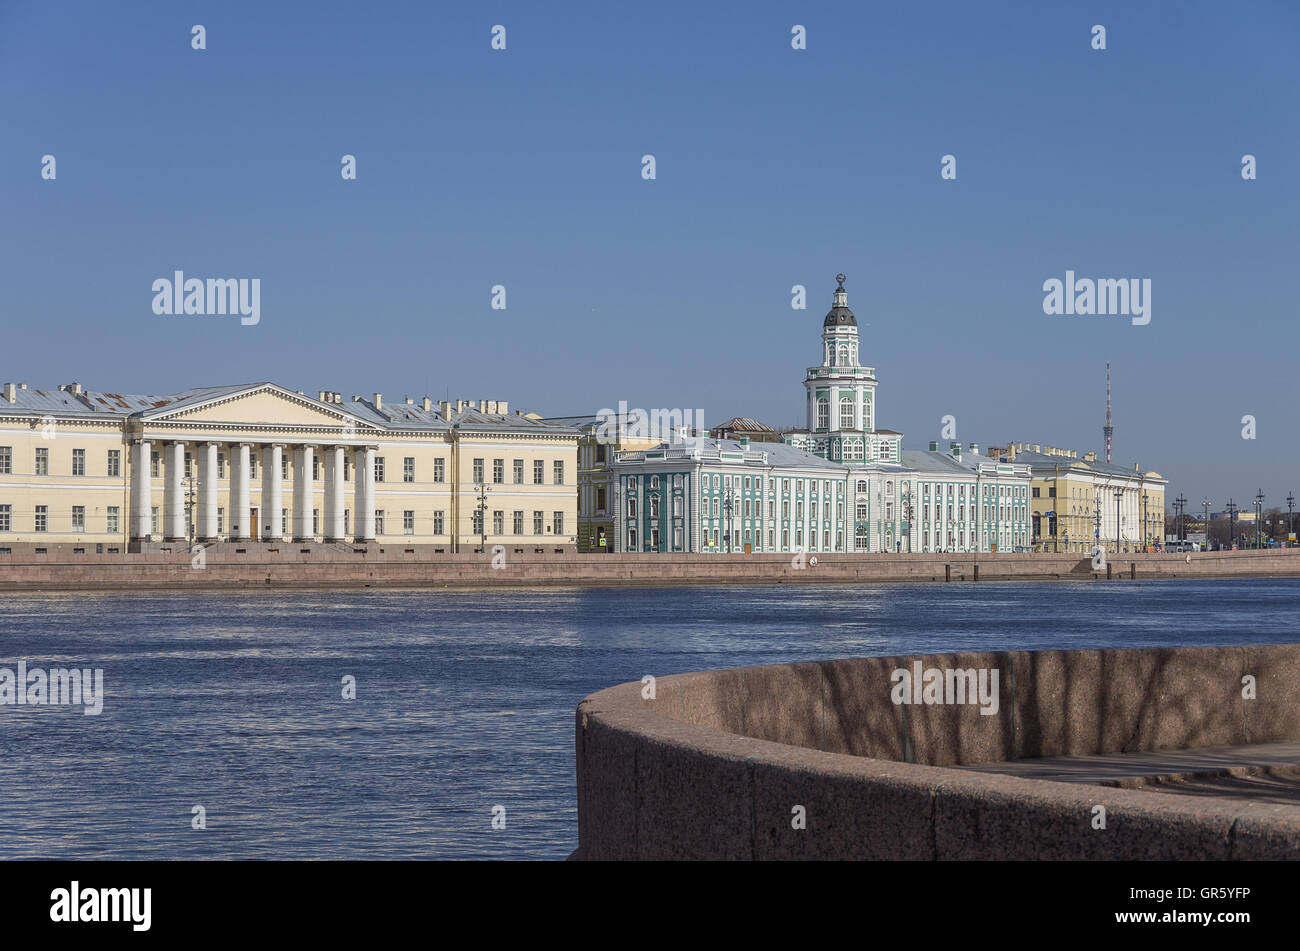 View to Neva river embankment and Kunstkamera museum, Sankt-Peterburg, Russia - Stock Image